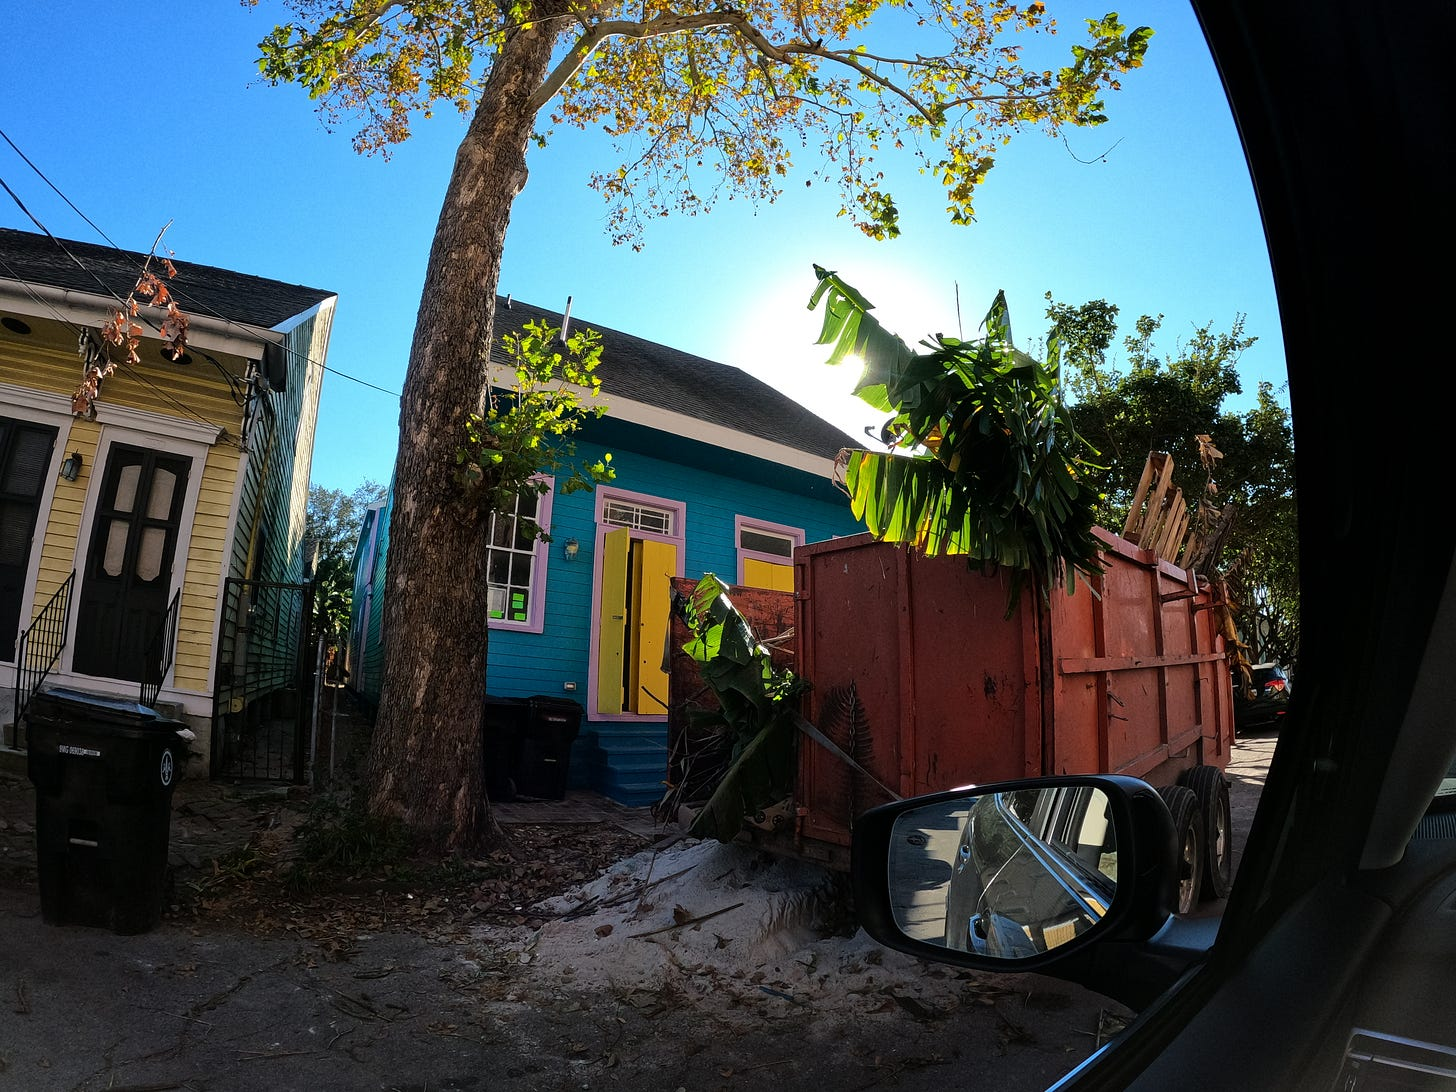 the sun is shining on a colorful blue house with yellow windows as bananna tree stretches out over a dumpster - this is classic shot of Bywater neighborhood in new orleans